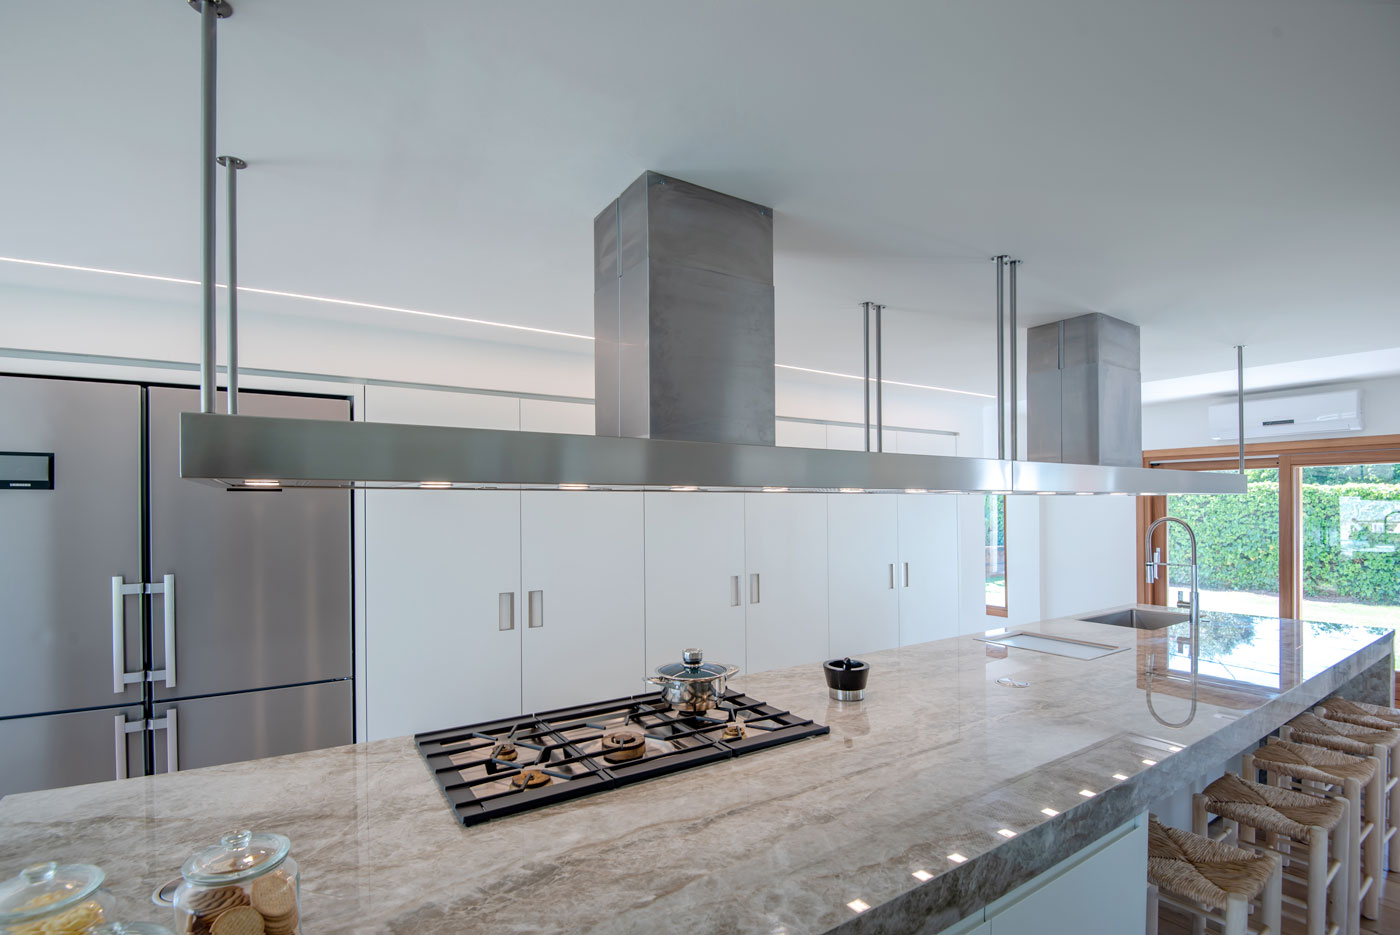 A Kitchen refurbished by  Overlord by Sergi Quílez i Marin Overlord by Sergi Quílez i Marin